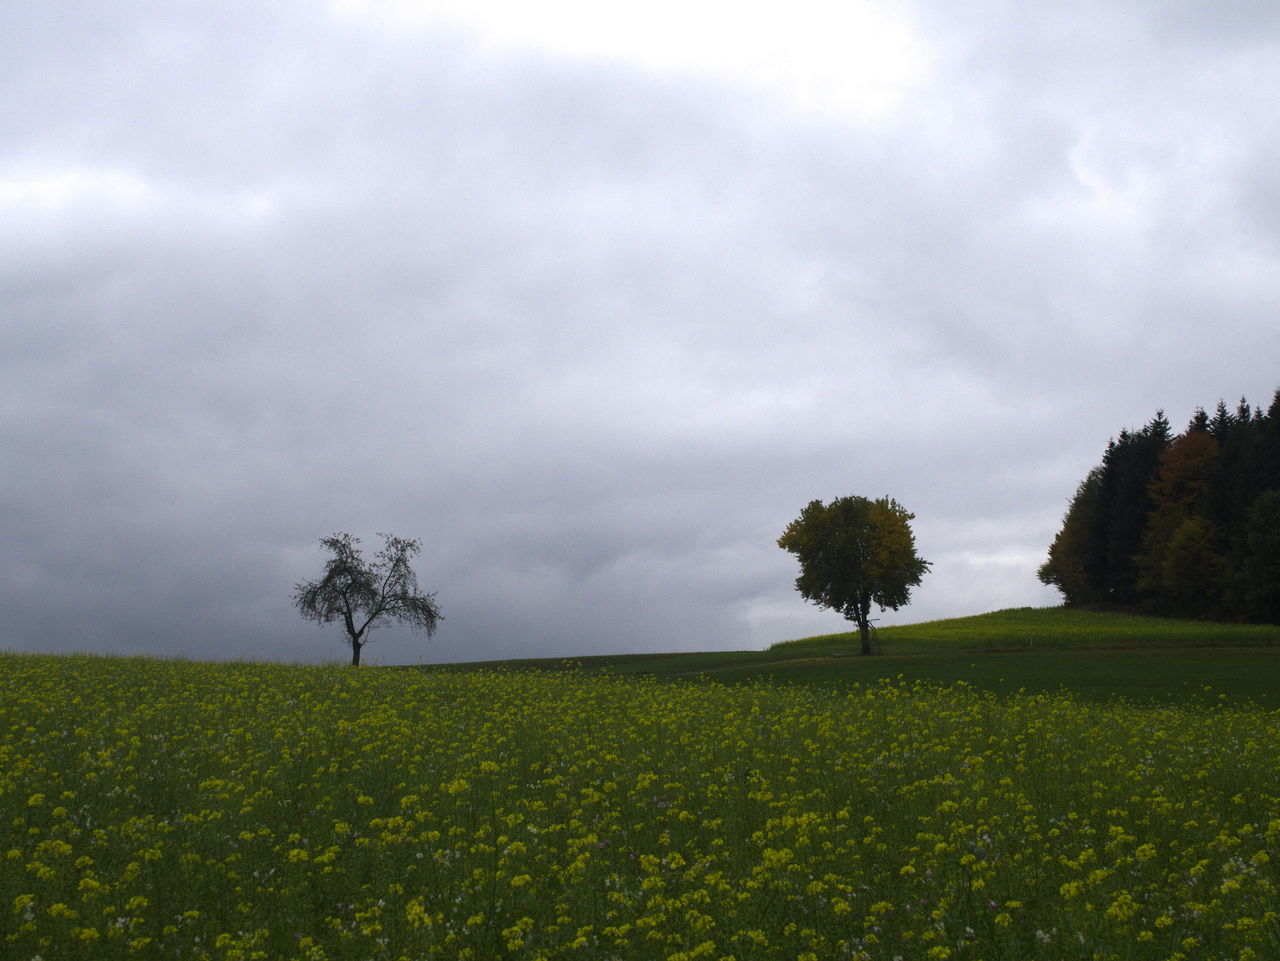 tree, field, nature, beauty in nature, tranquility, landscape, tranquil scene, growth, agriculture, scenics, sky, day, outdoors, no people, rural scene, cloud - sky, green color, grass, flower, freshness